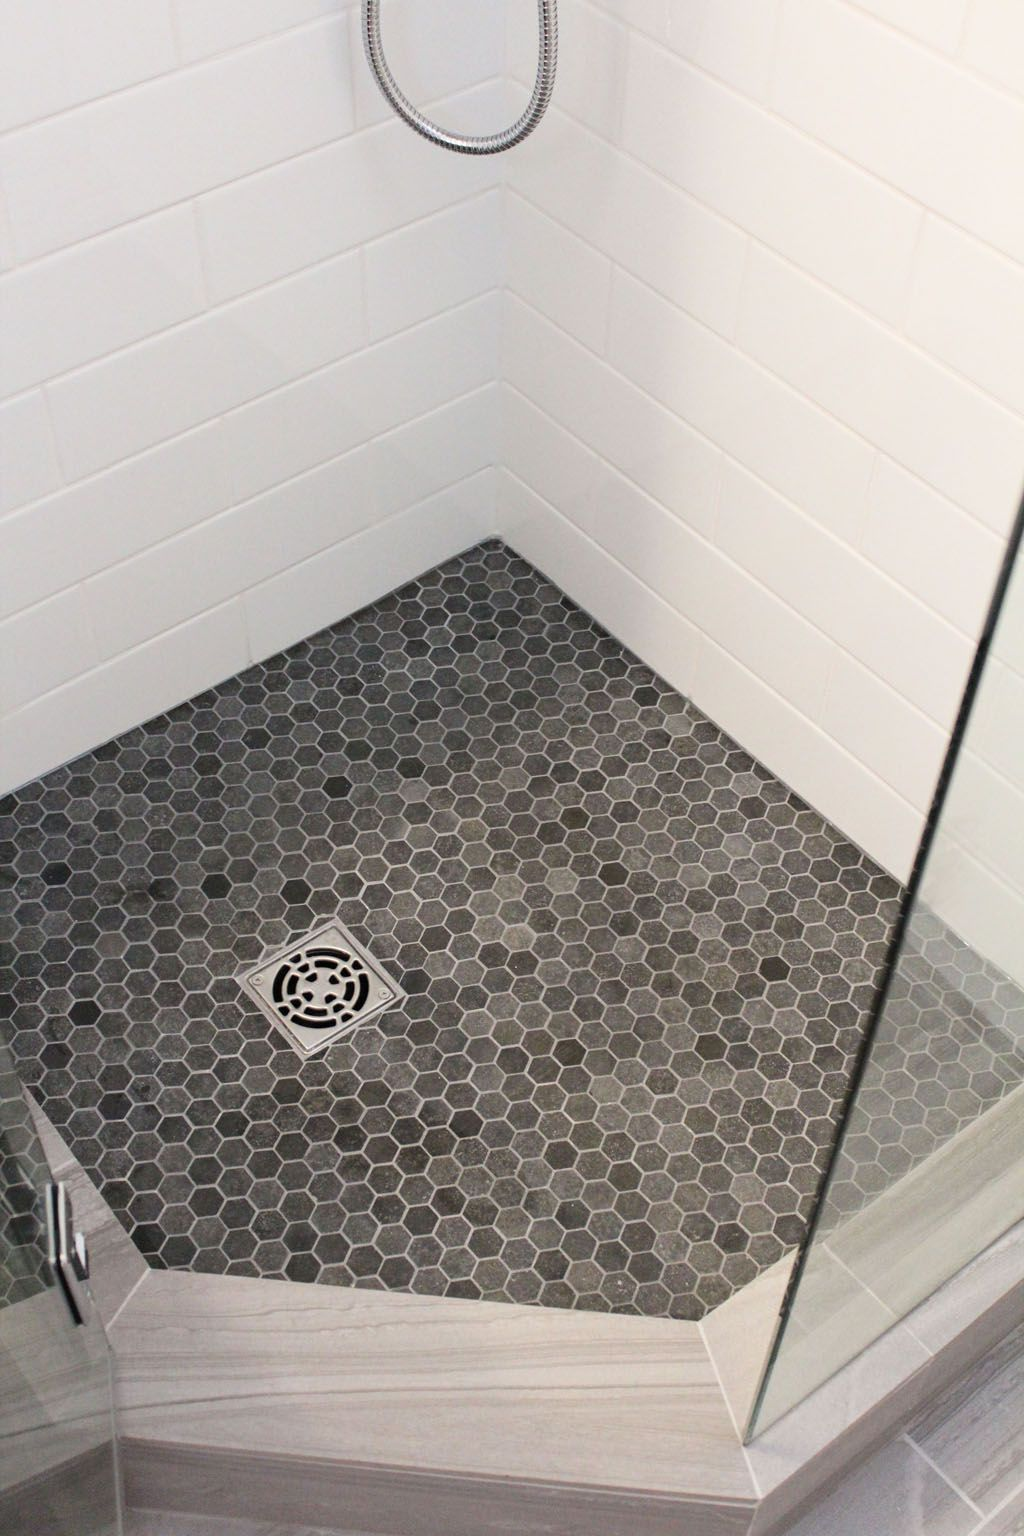 Honeycomb Floor With White Tile Shower Floor Tile Beautiful